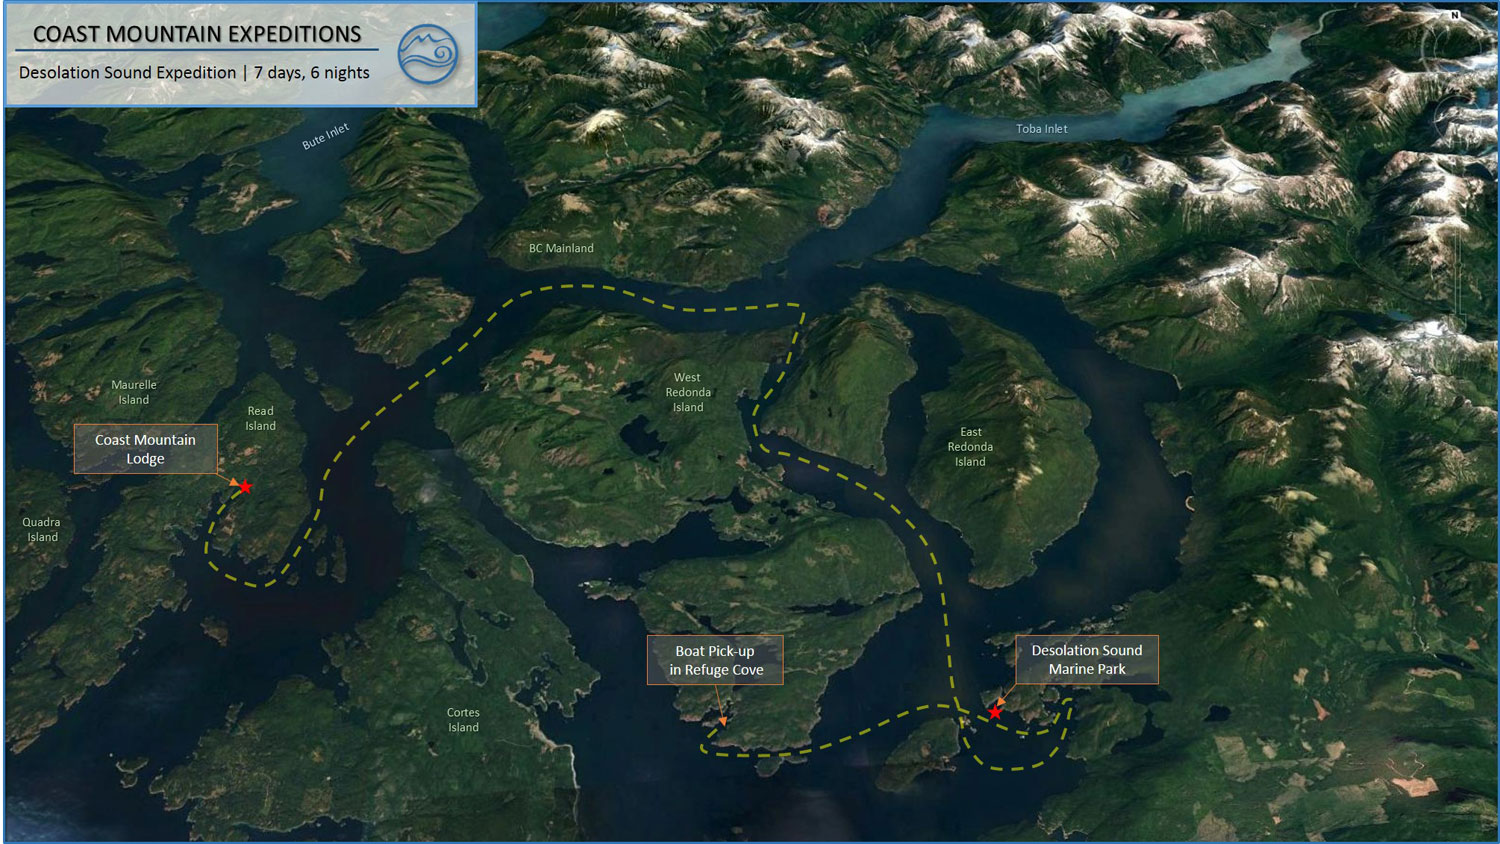 desolation-sound-kayak-map-2017